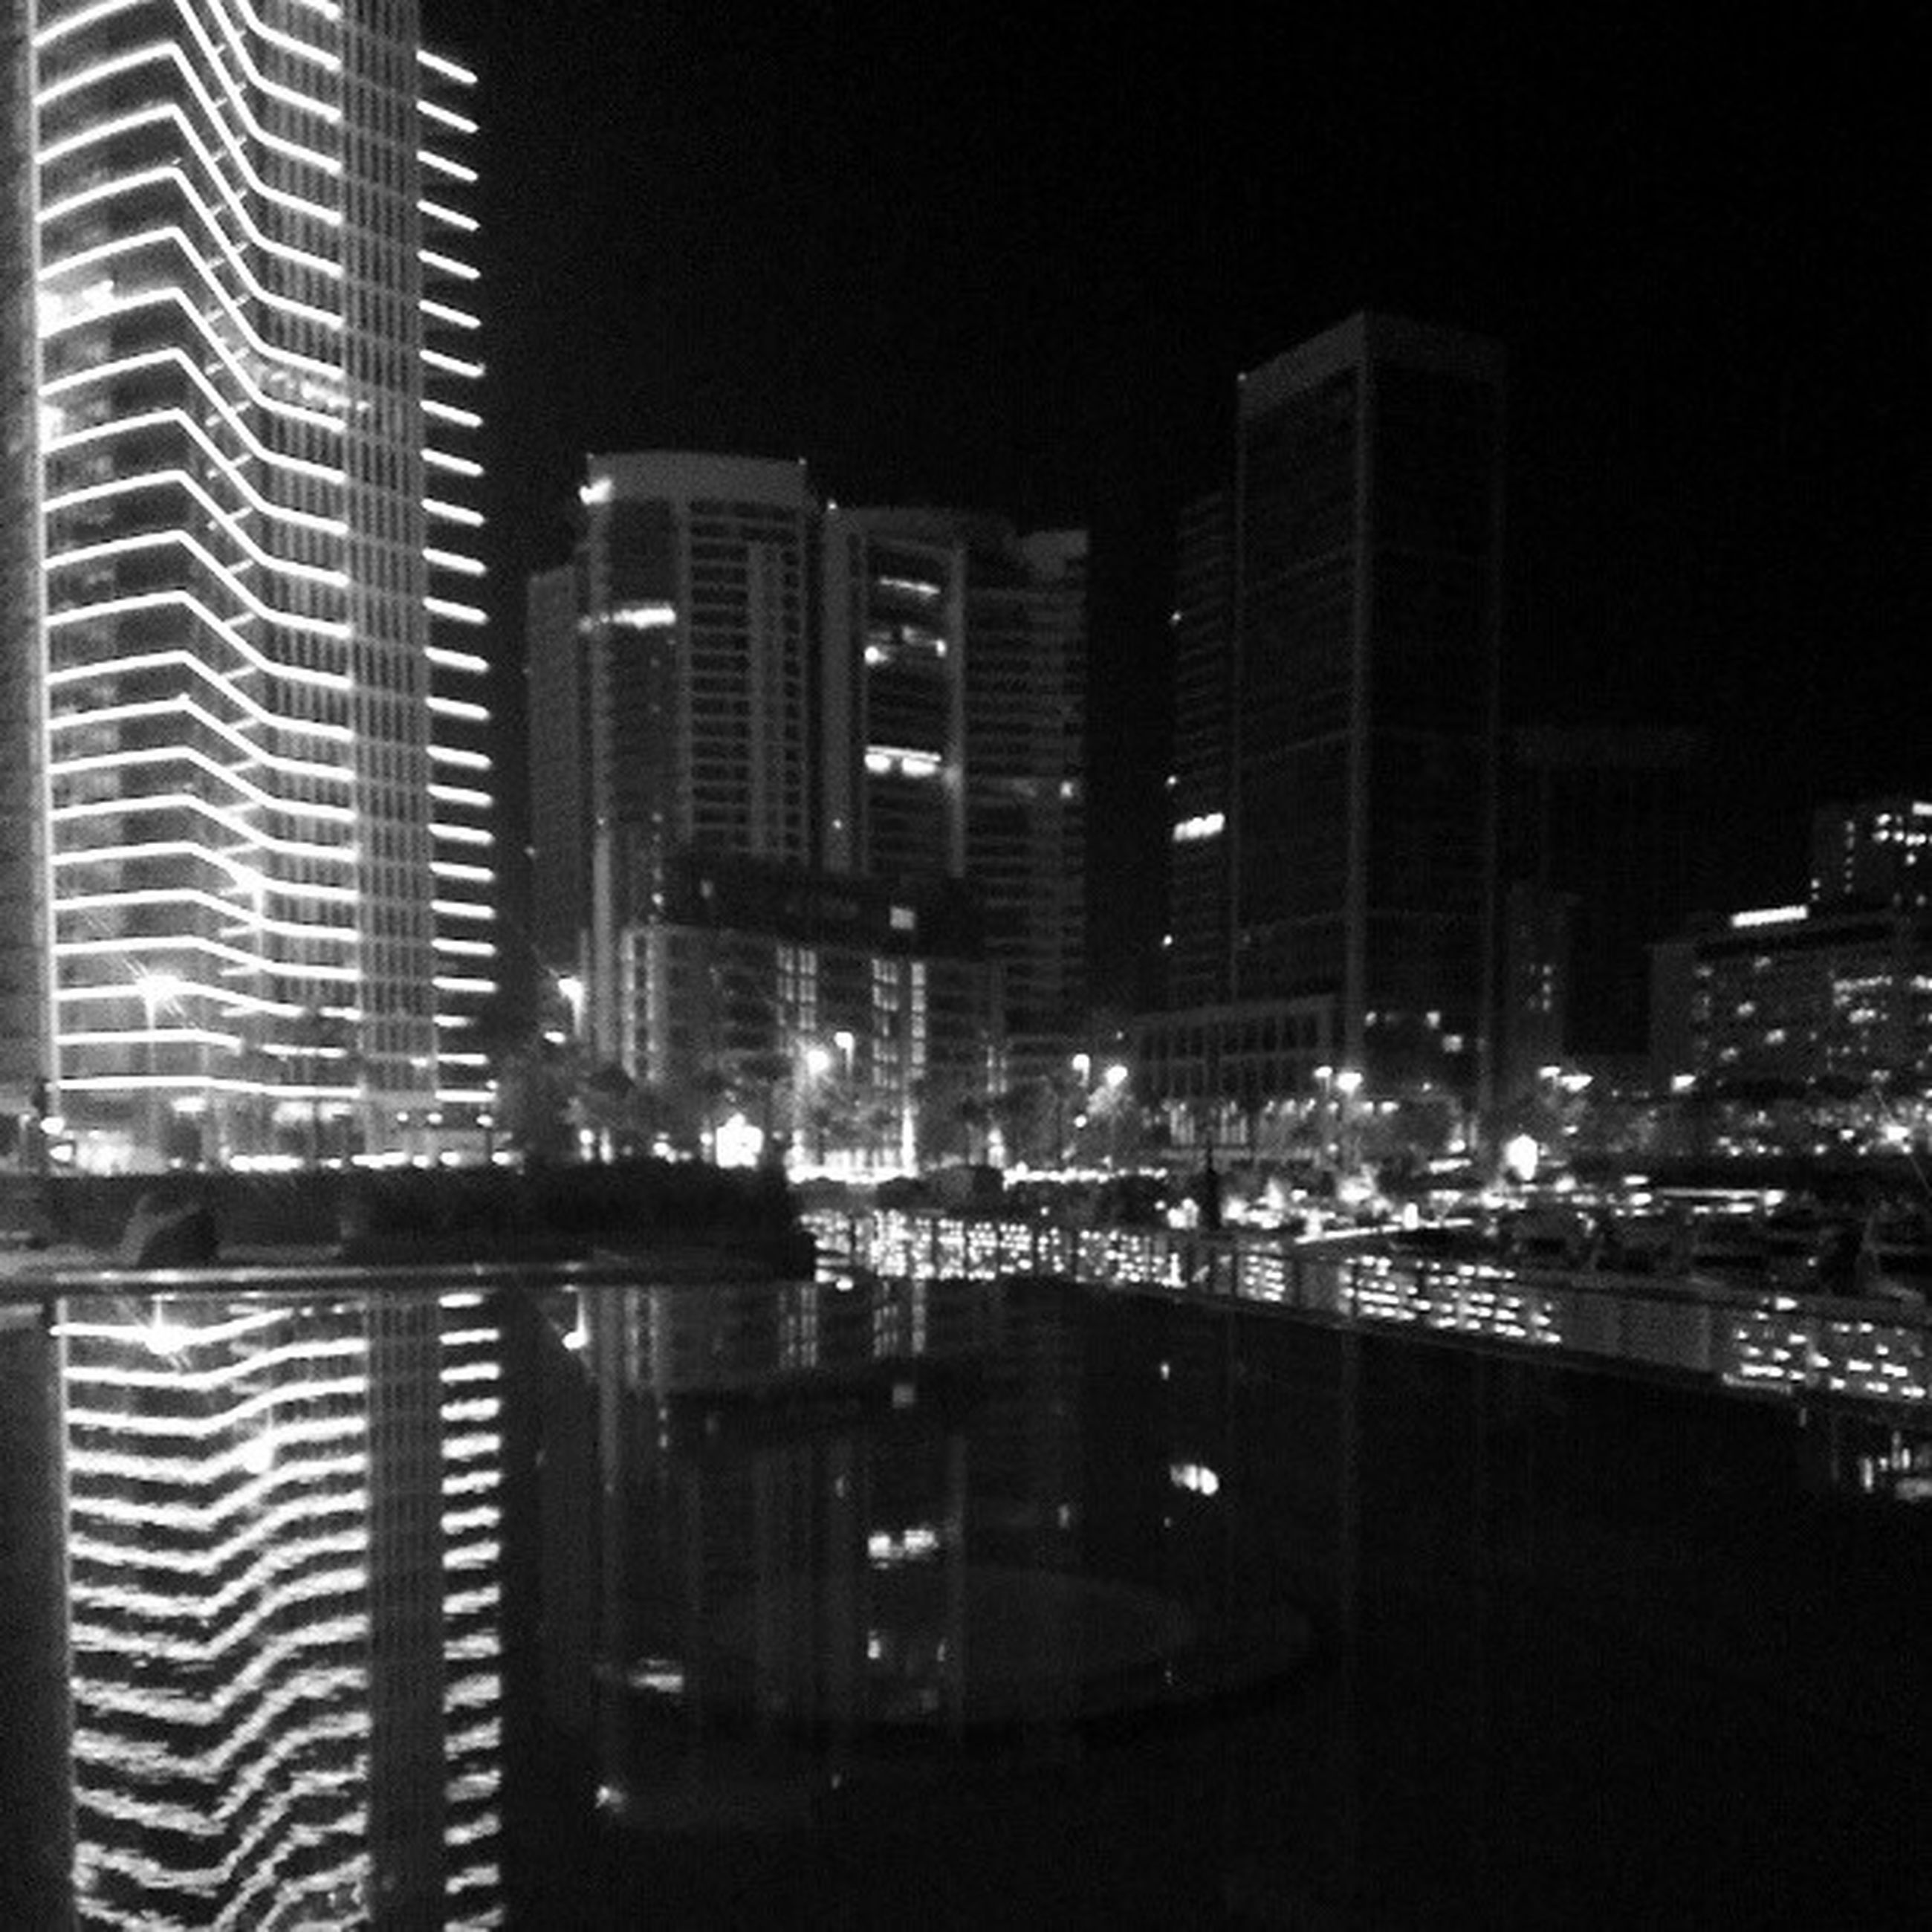 building exterior, city, architecture, skyscraper, illuminated, night, built structure, modern, office building, cityscape, tall - high, tower, urban skyline, financial district, building, city life, glass - material, reflection, residential building, development